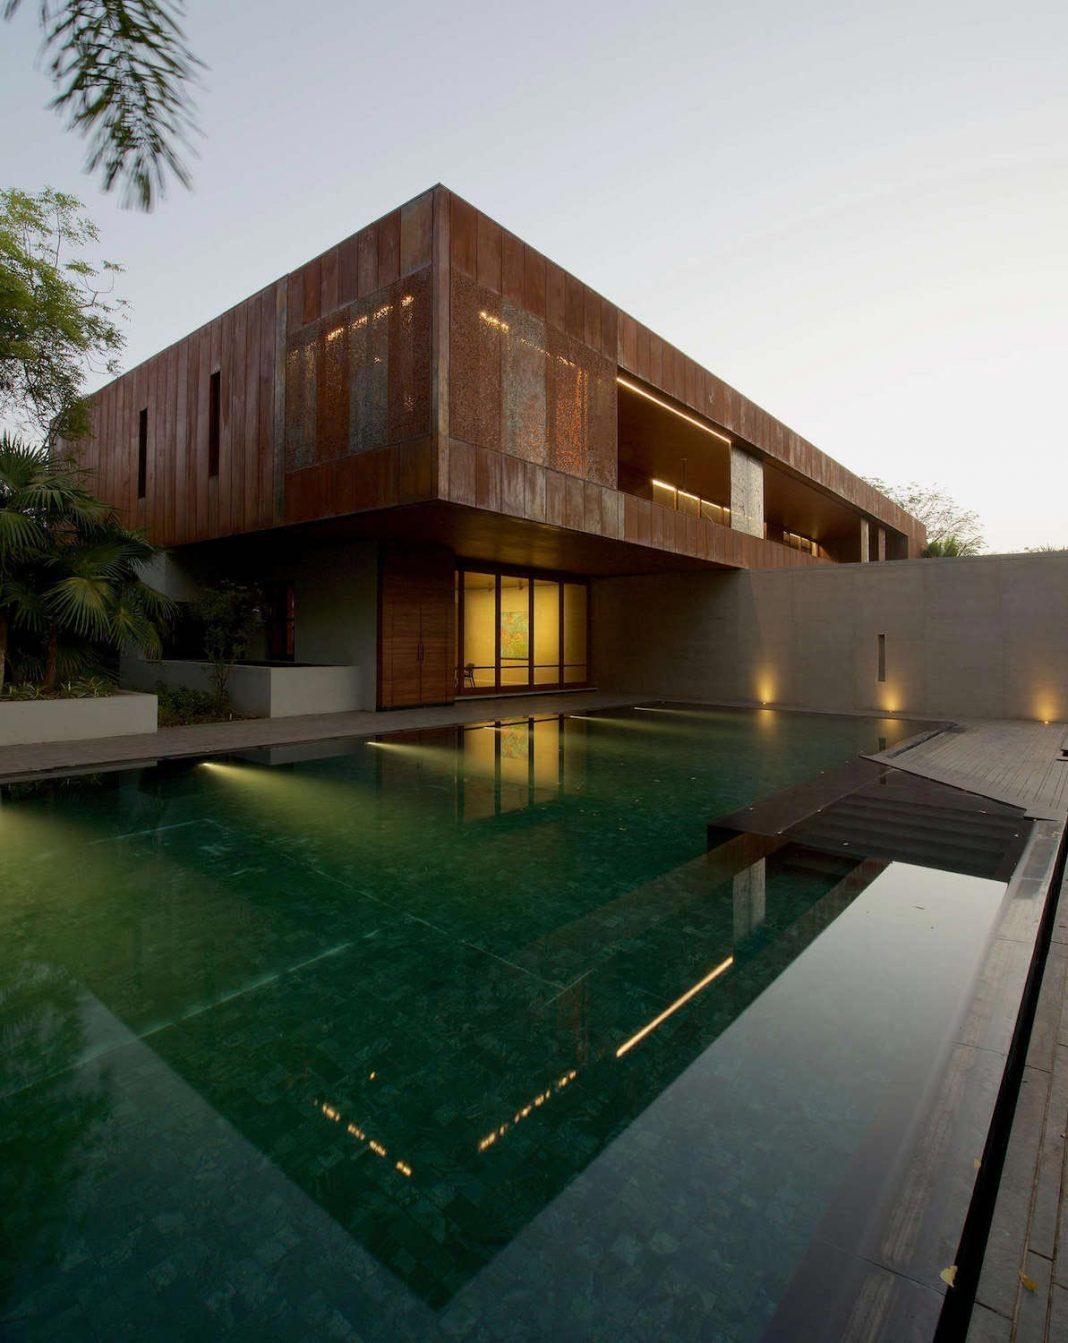 Contemporary Two Storey Diya Residence Located In Ahmedabad India By Spasm Design Architects